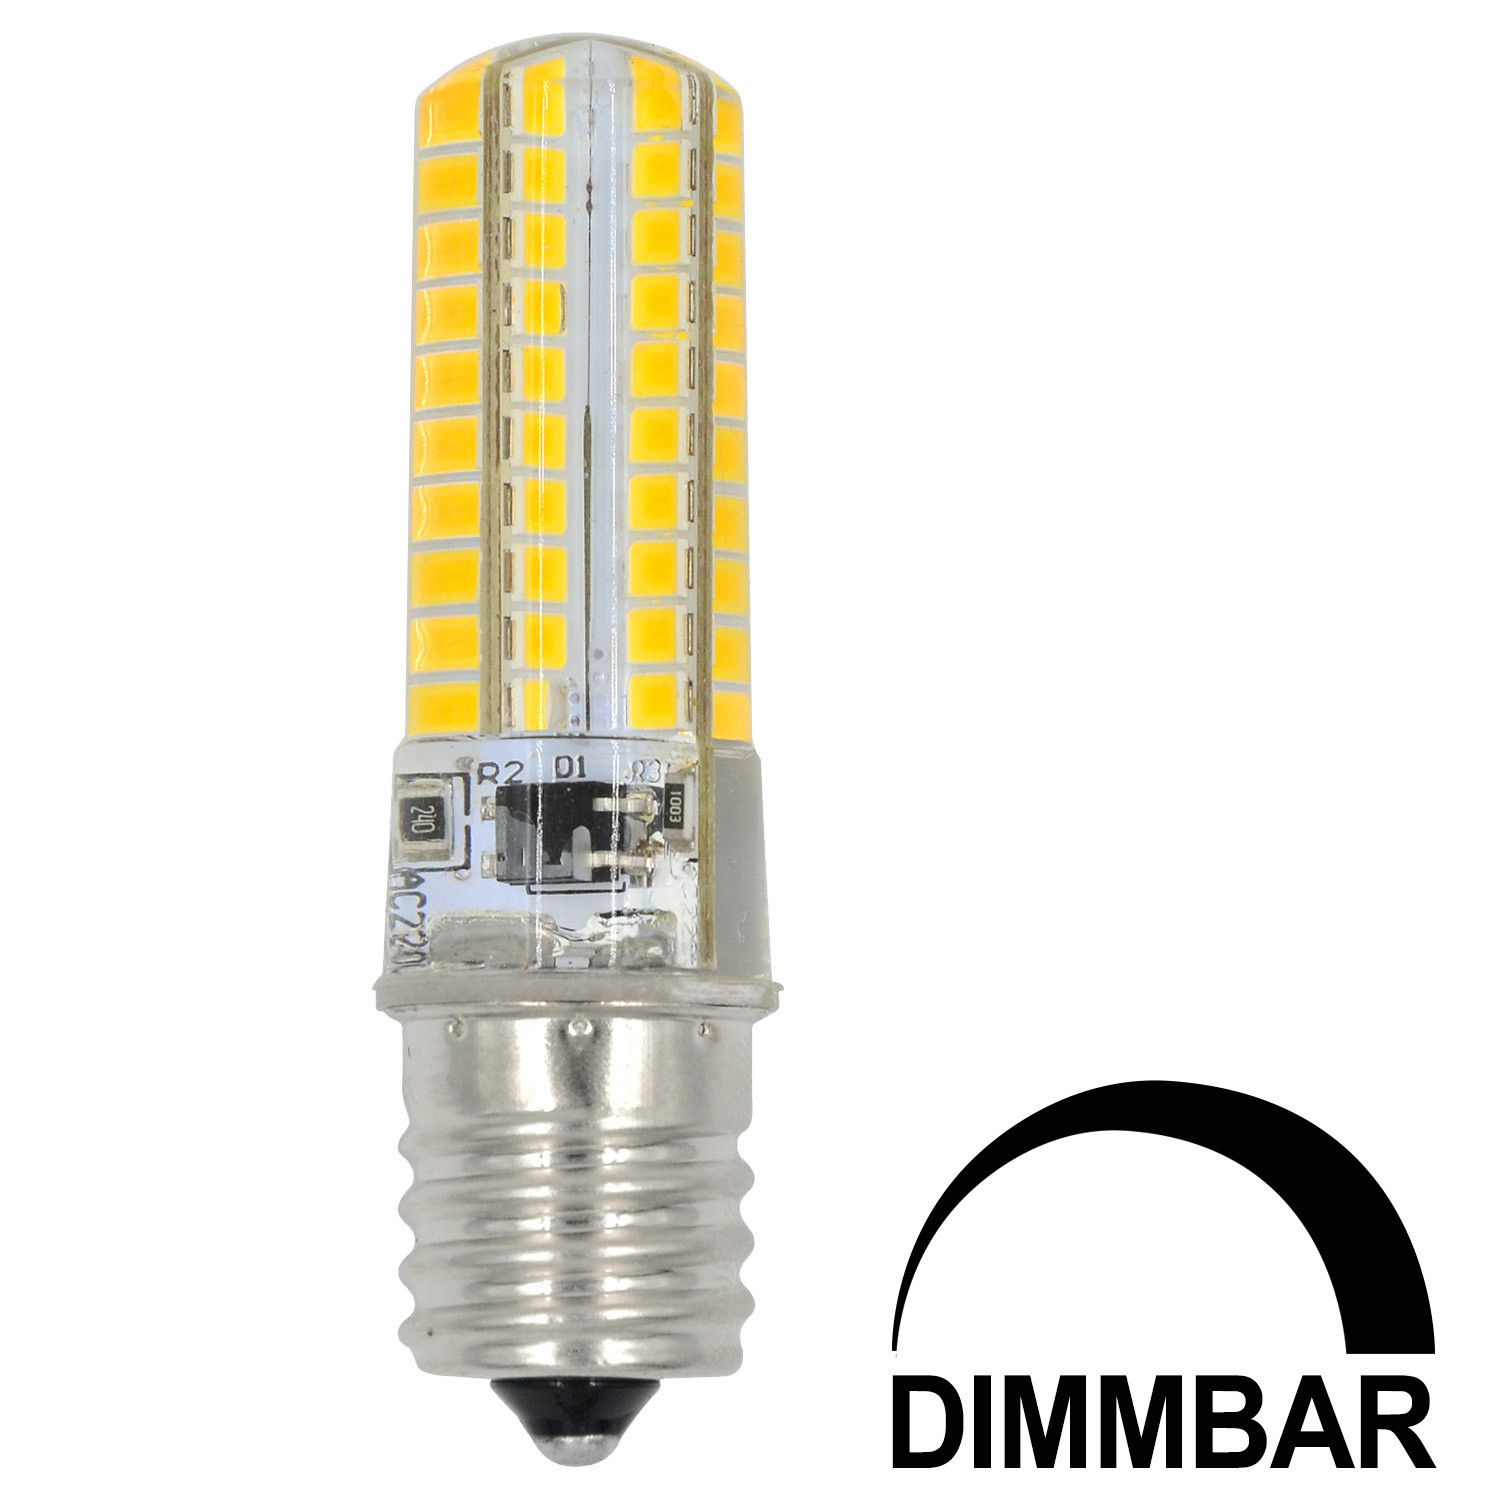 MENGS® E17 7W LED Dimmable Light 80x 2835 SMD LED Bulb Lamp In Cool White Energy-Saving Light